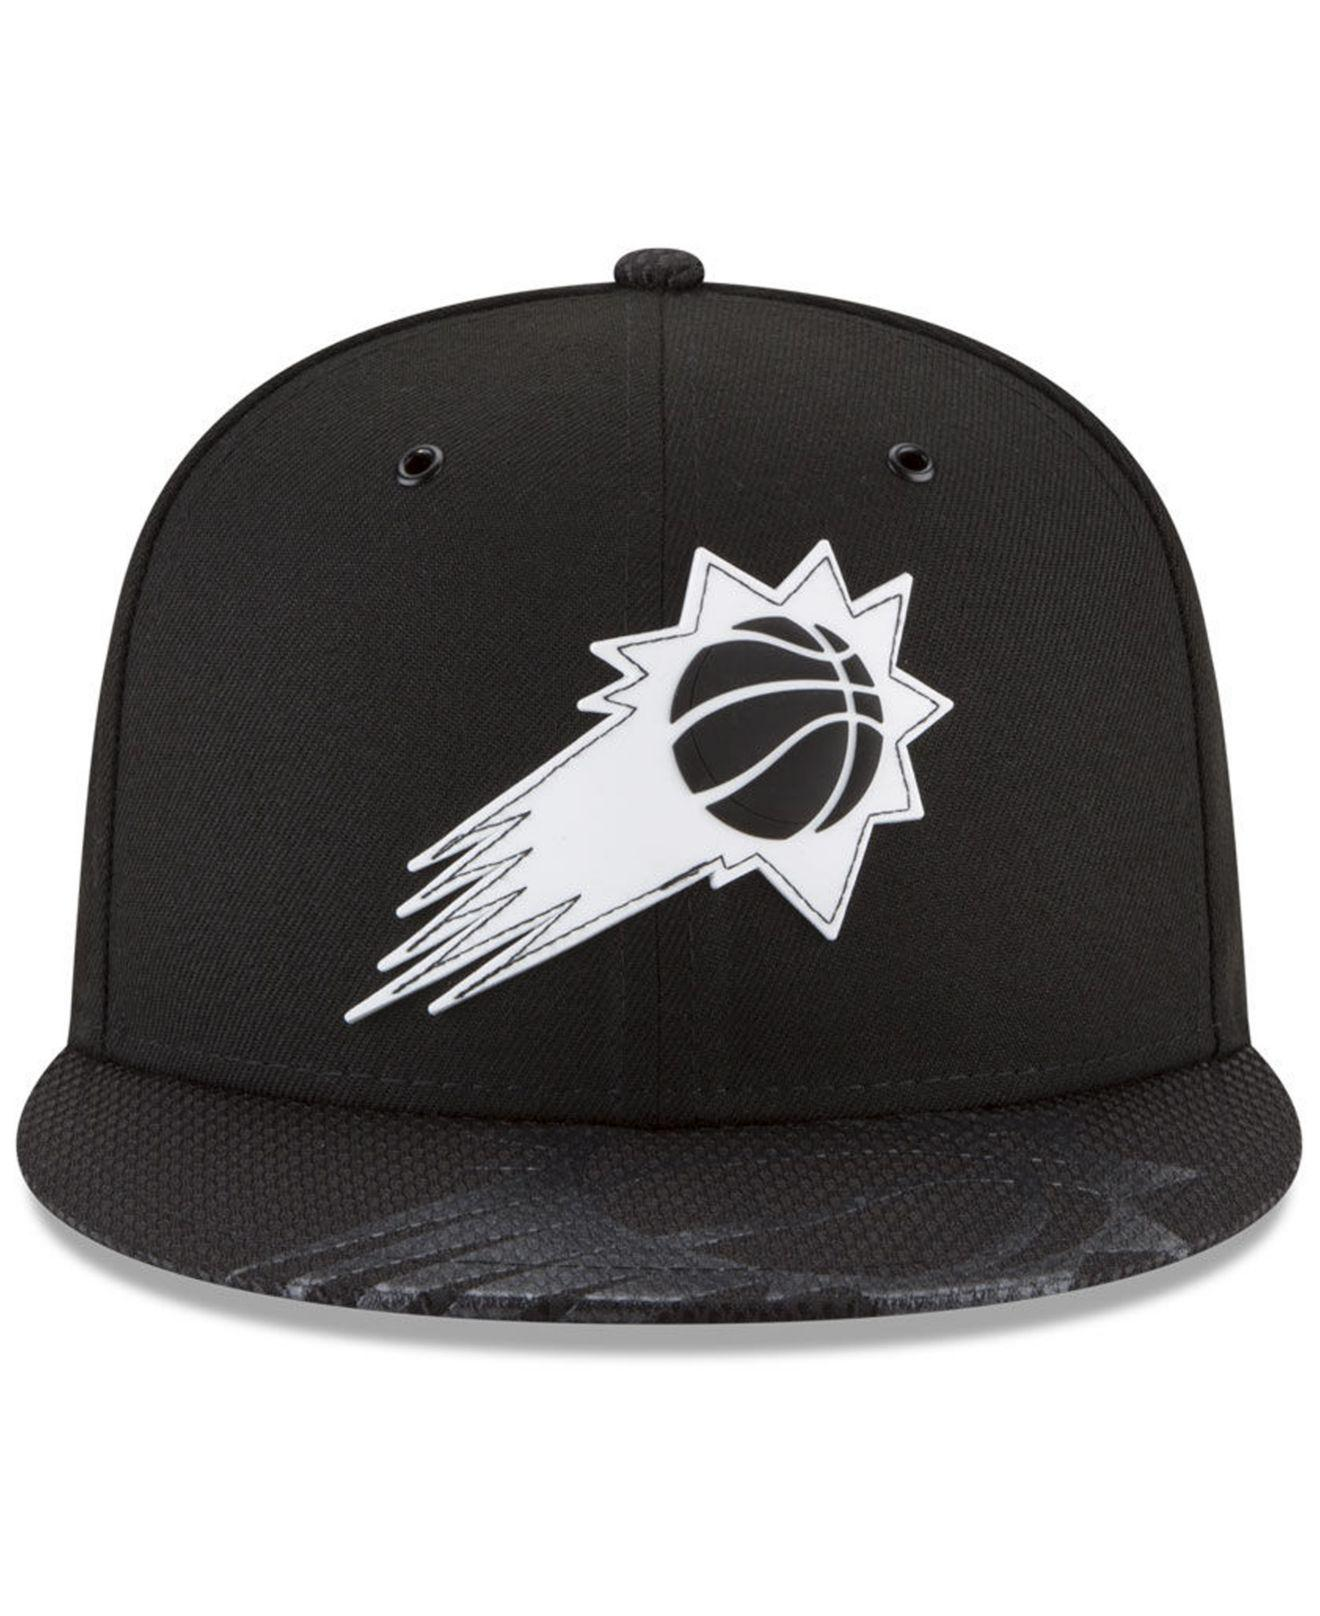 buy popular d1c5f a441e ... real lyst ktz phoenix suns back 1 2 series 9fifty snapback cap in black  for men